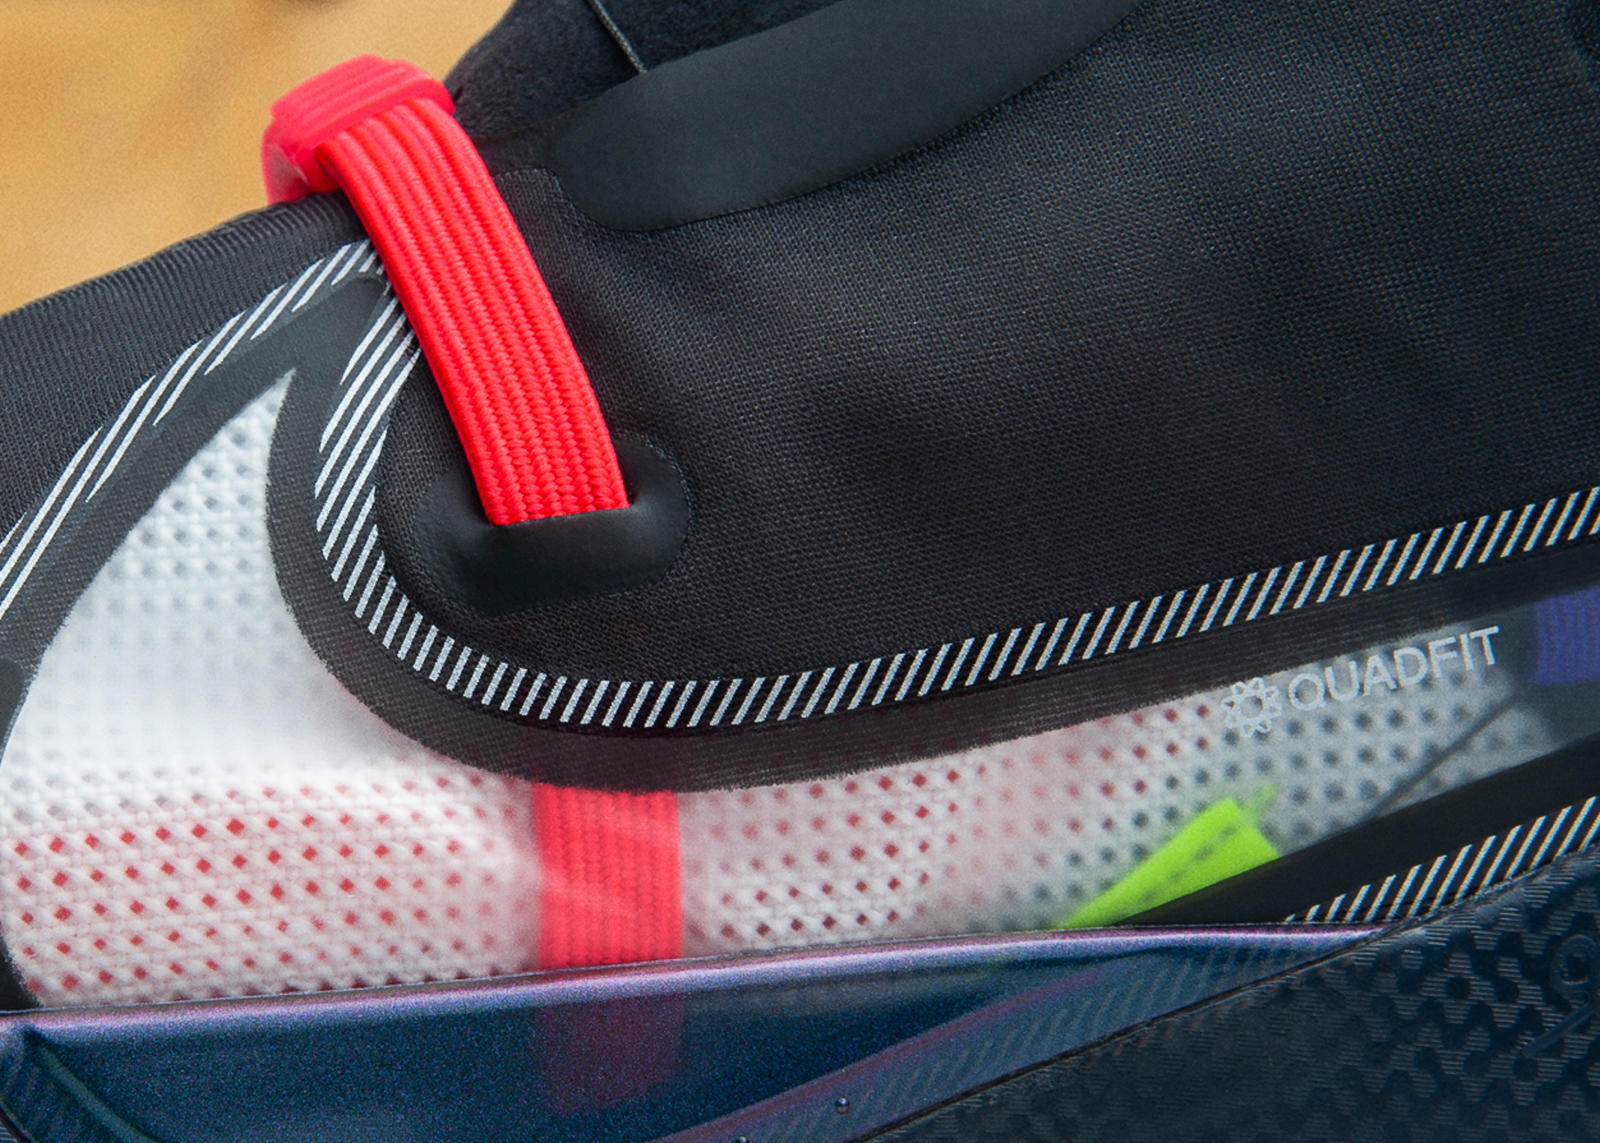 best sneakers 5041c 833bc Nike KOBE AD NXT Official Images and Release Date - Nike News